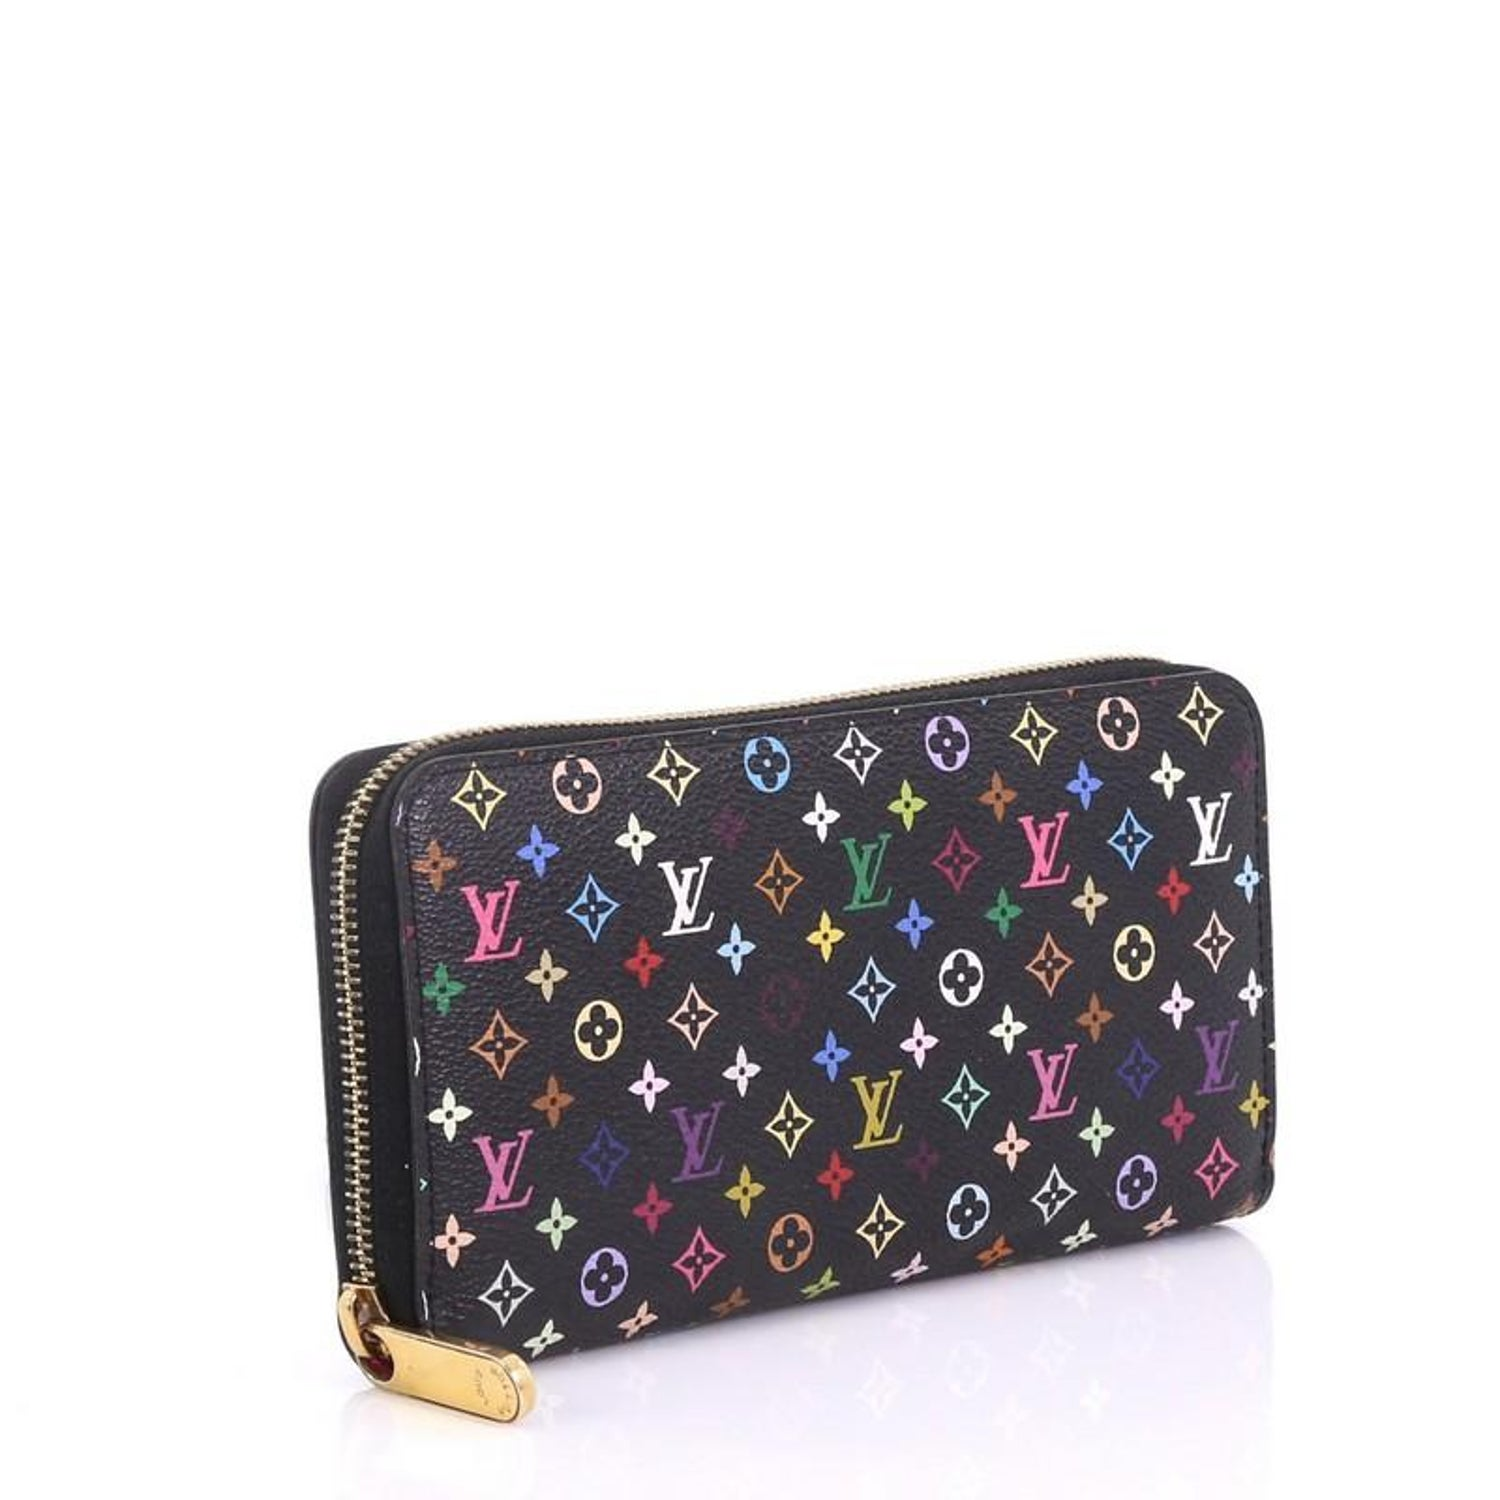 057e2e75b925 Louis Vuitton Zippy Wallet Monogram Multicolor at 1stdibs